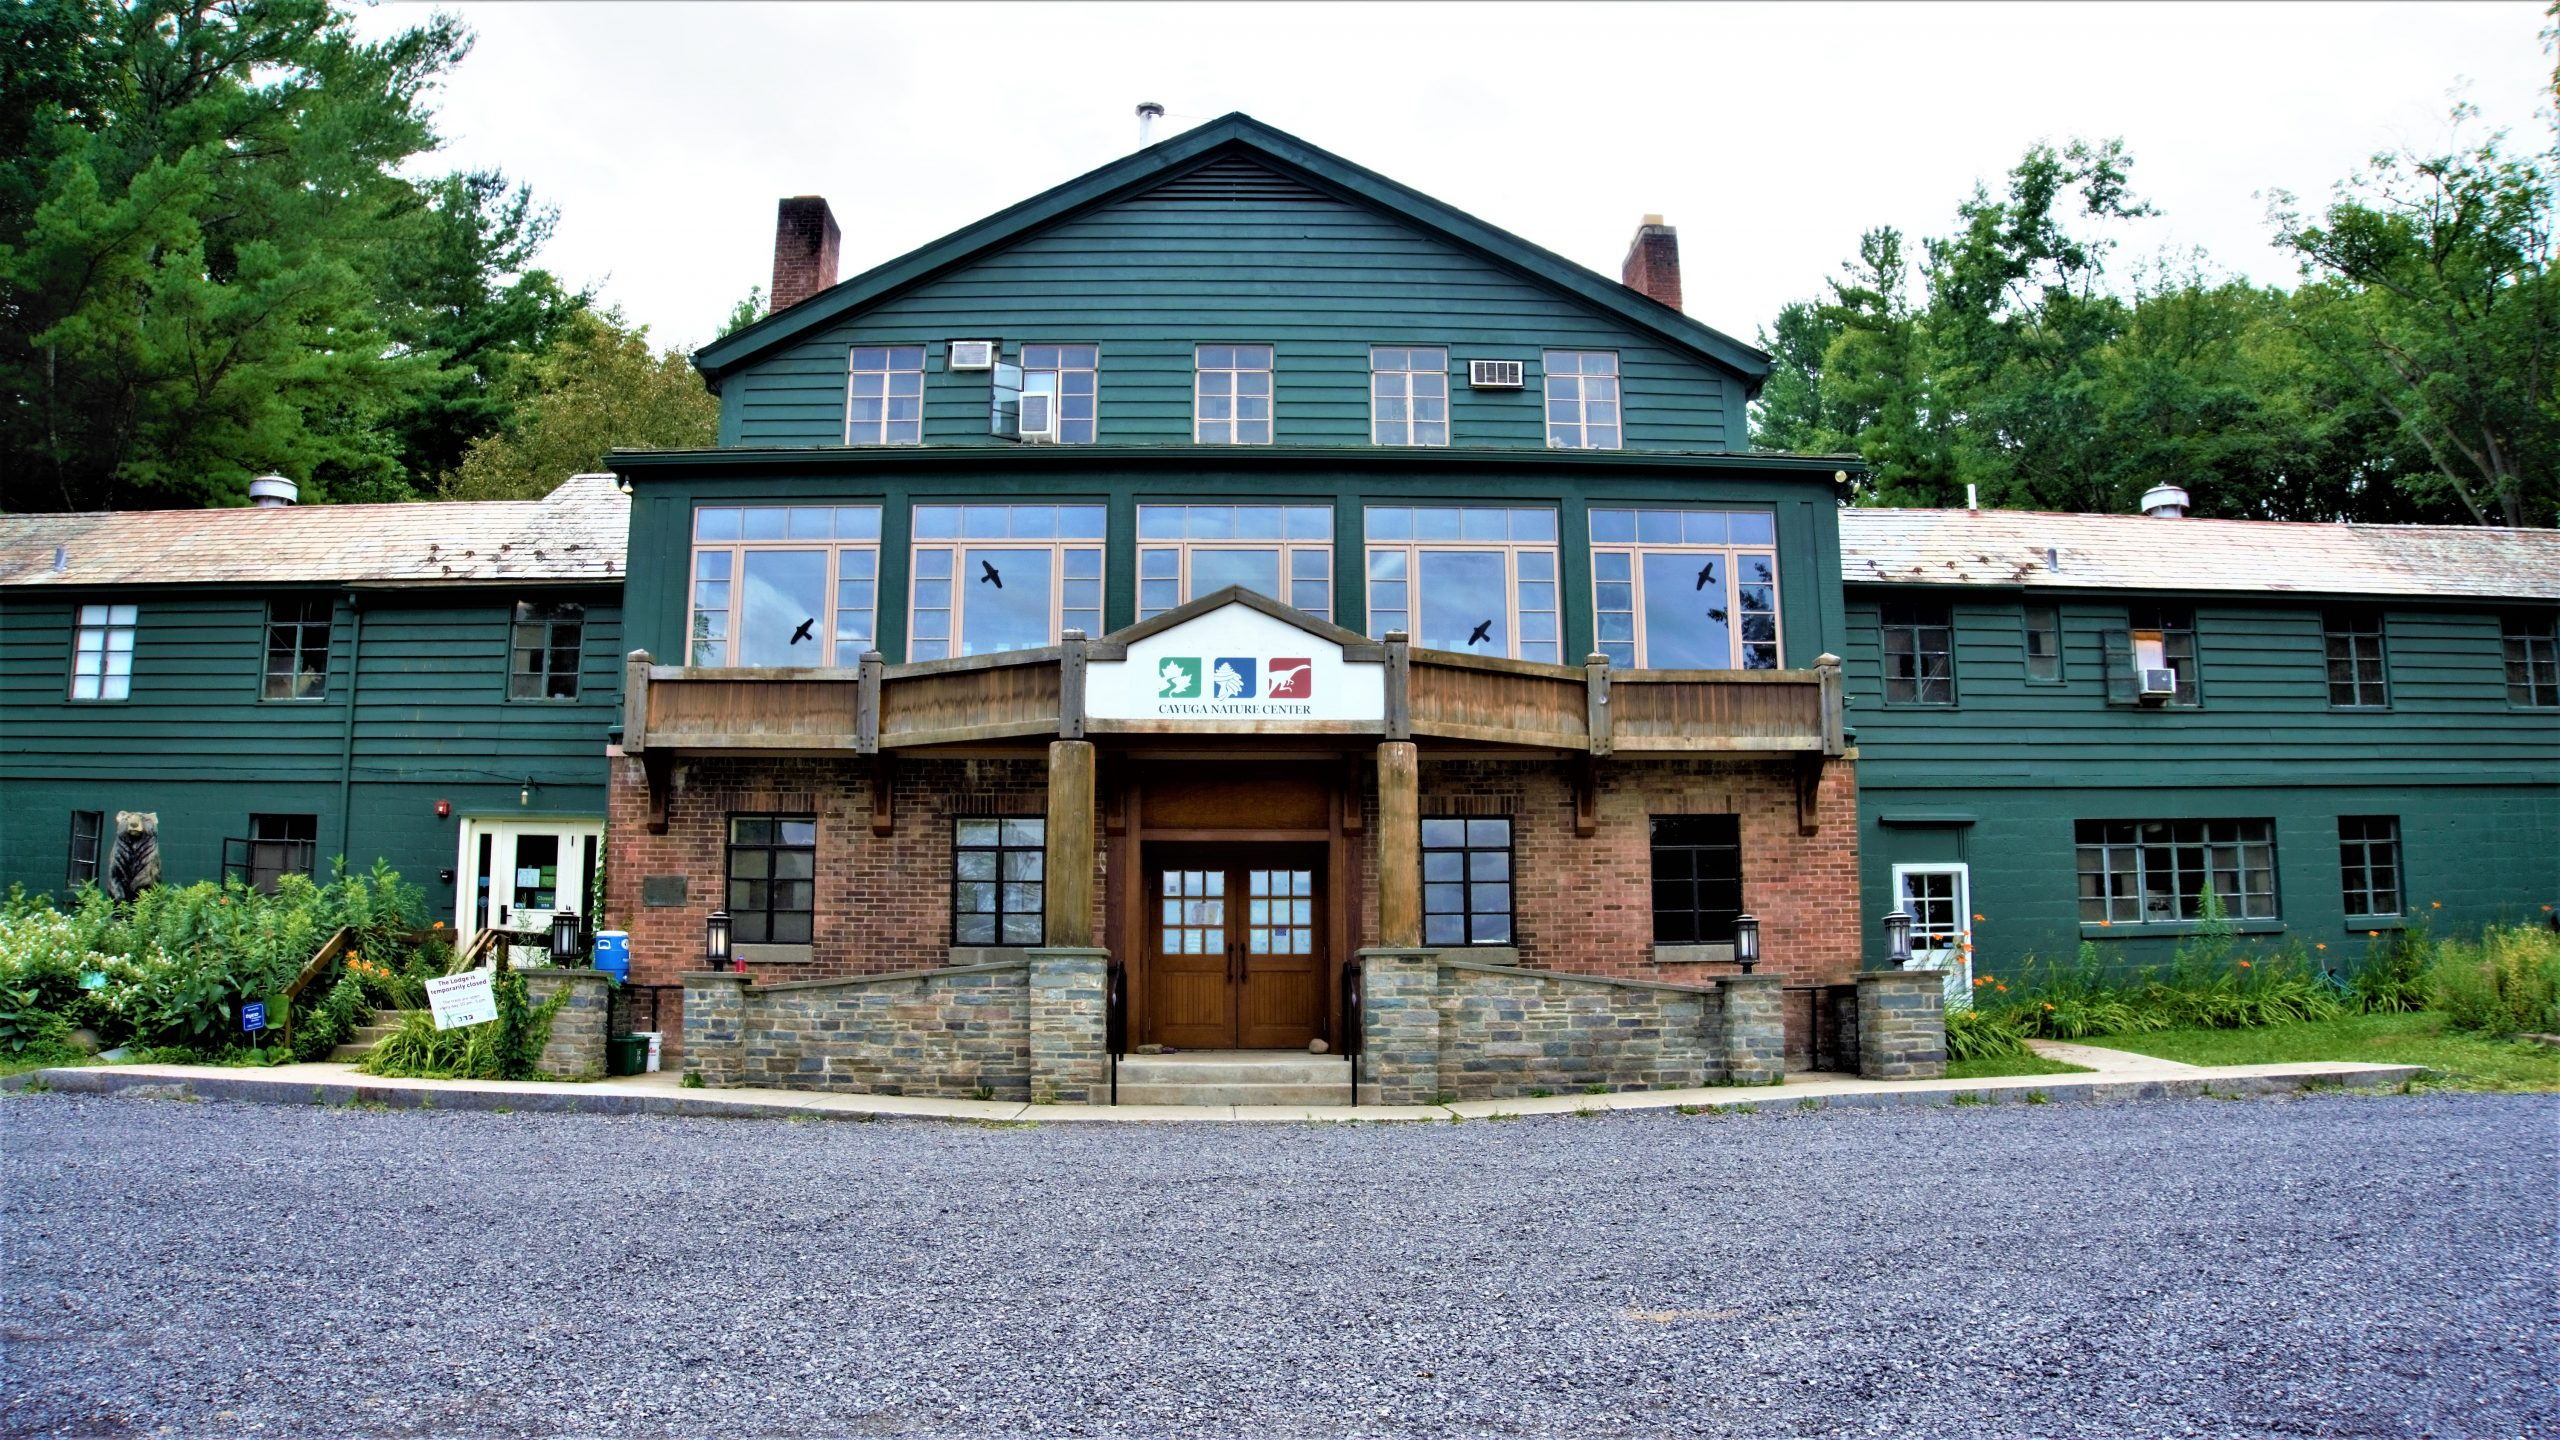 GOOD SPOTS: Cayuga Nature Center offers fun, outdoor educational opportunities